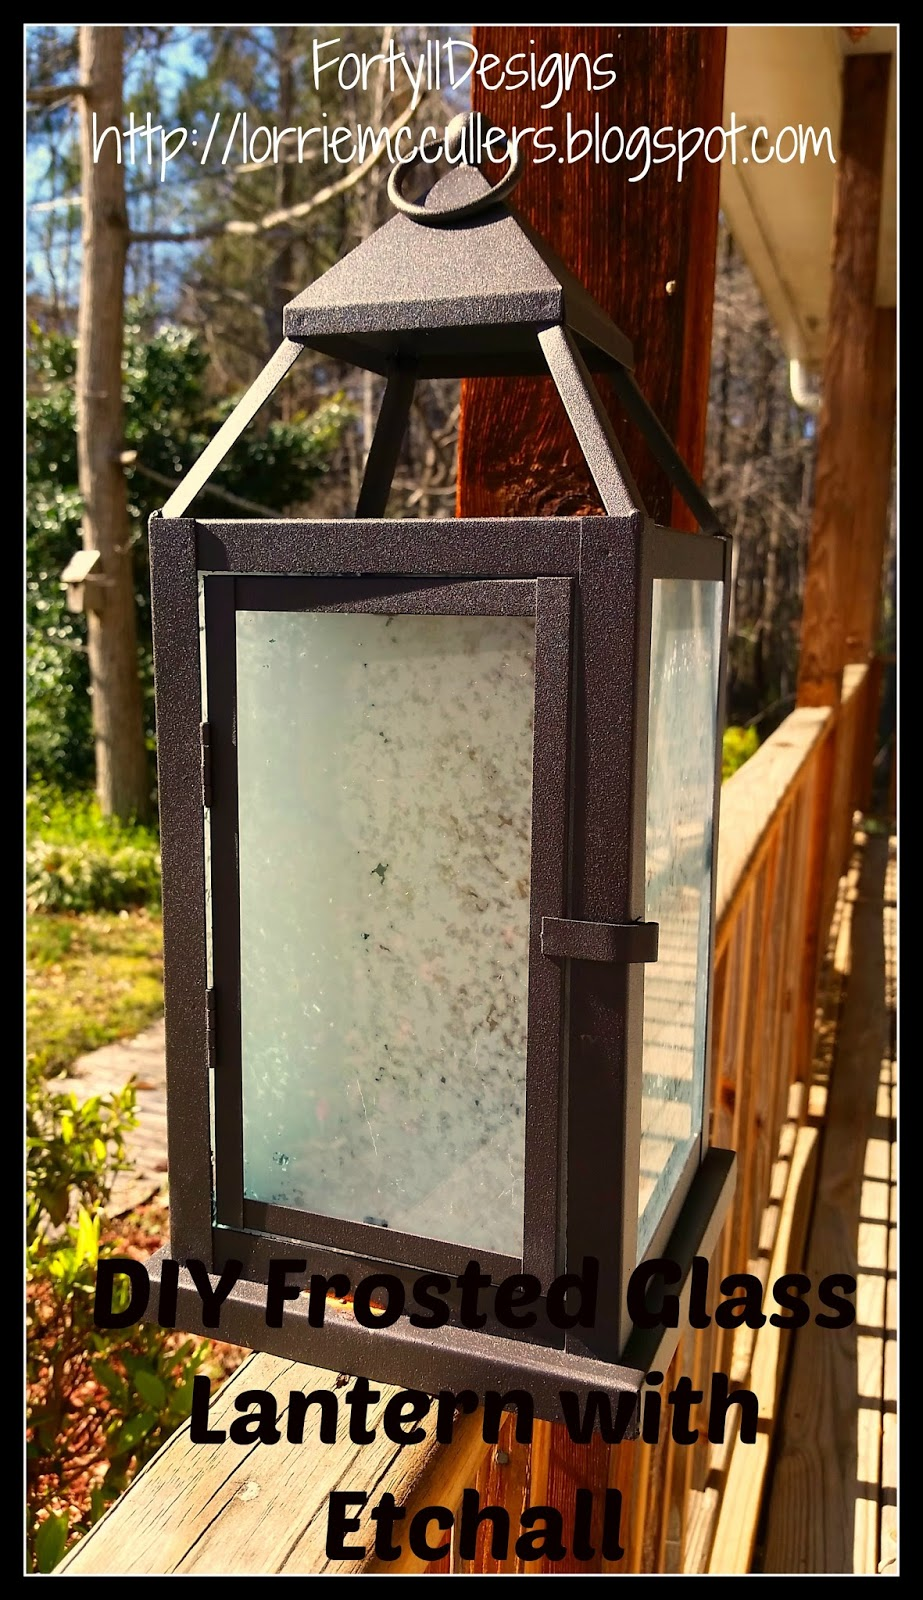 Etched Glass Lantern by Lorrie McCullers